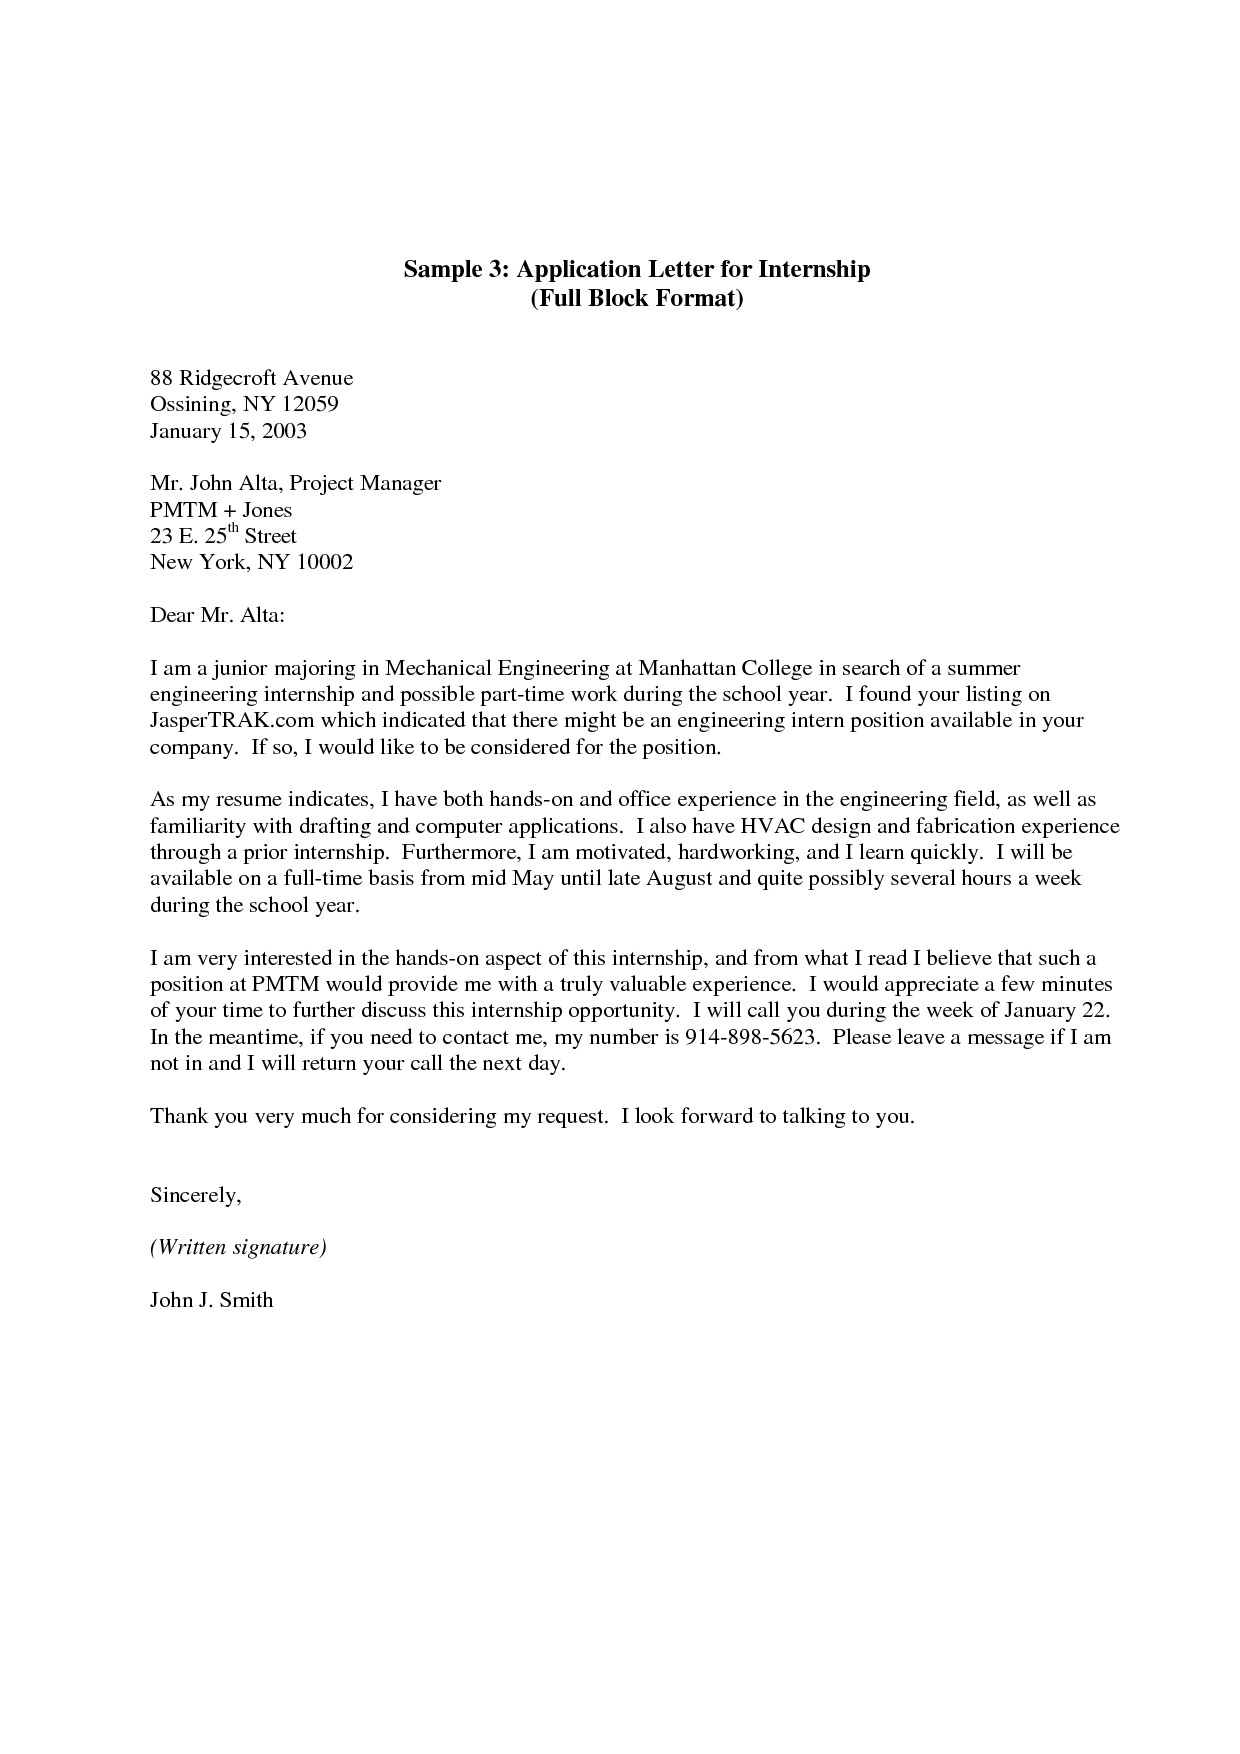 Letter Of Recommendation for Physical therapy School Template - Gustavopadilla Co Page 3 Of 11 Letter Sample formats Free